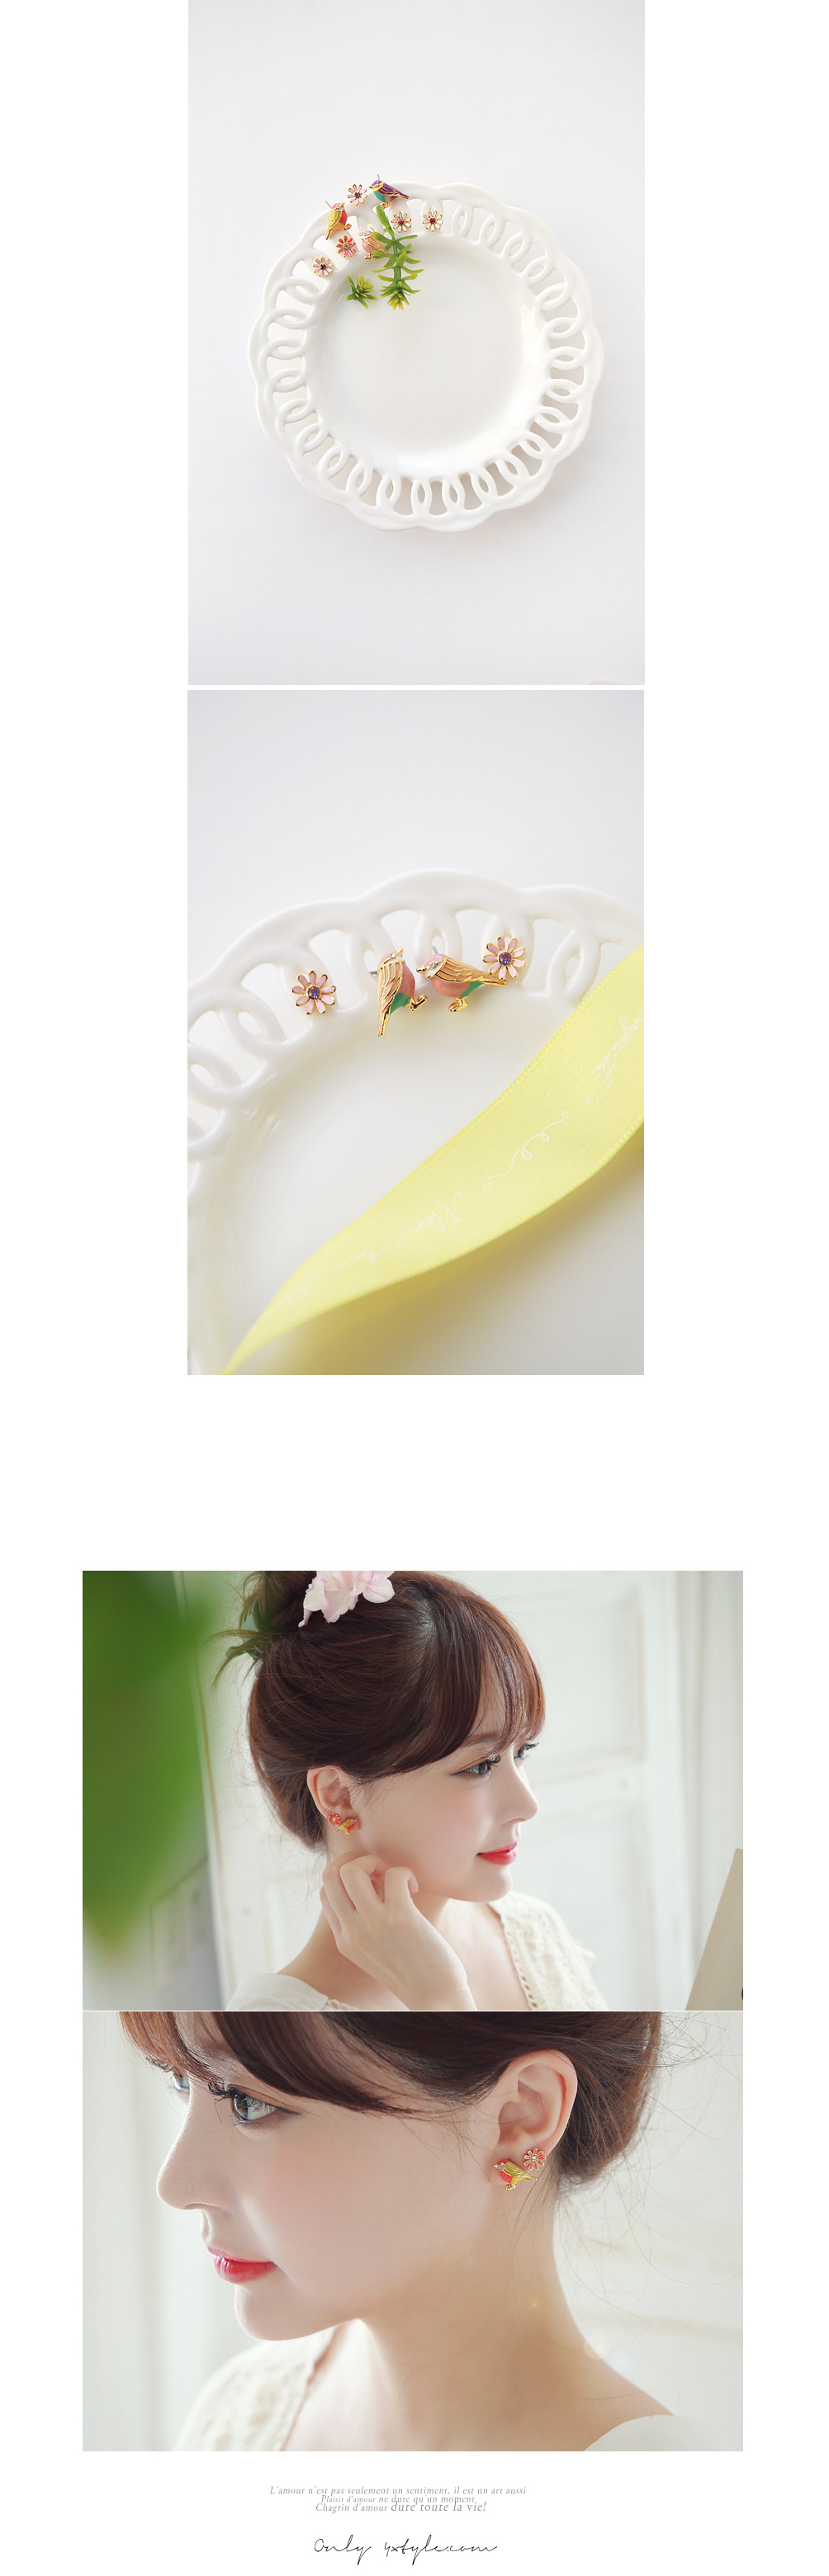 [ 4xtyle ] Bud n Flower Earring, 3 Colors